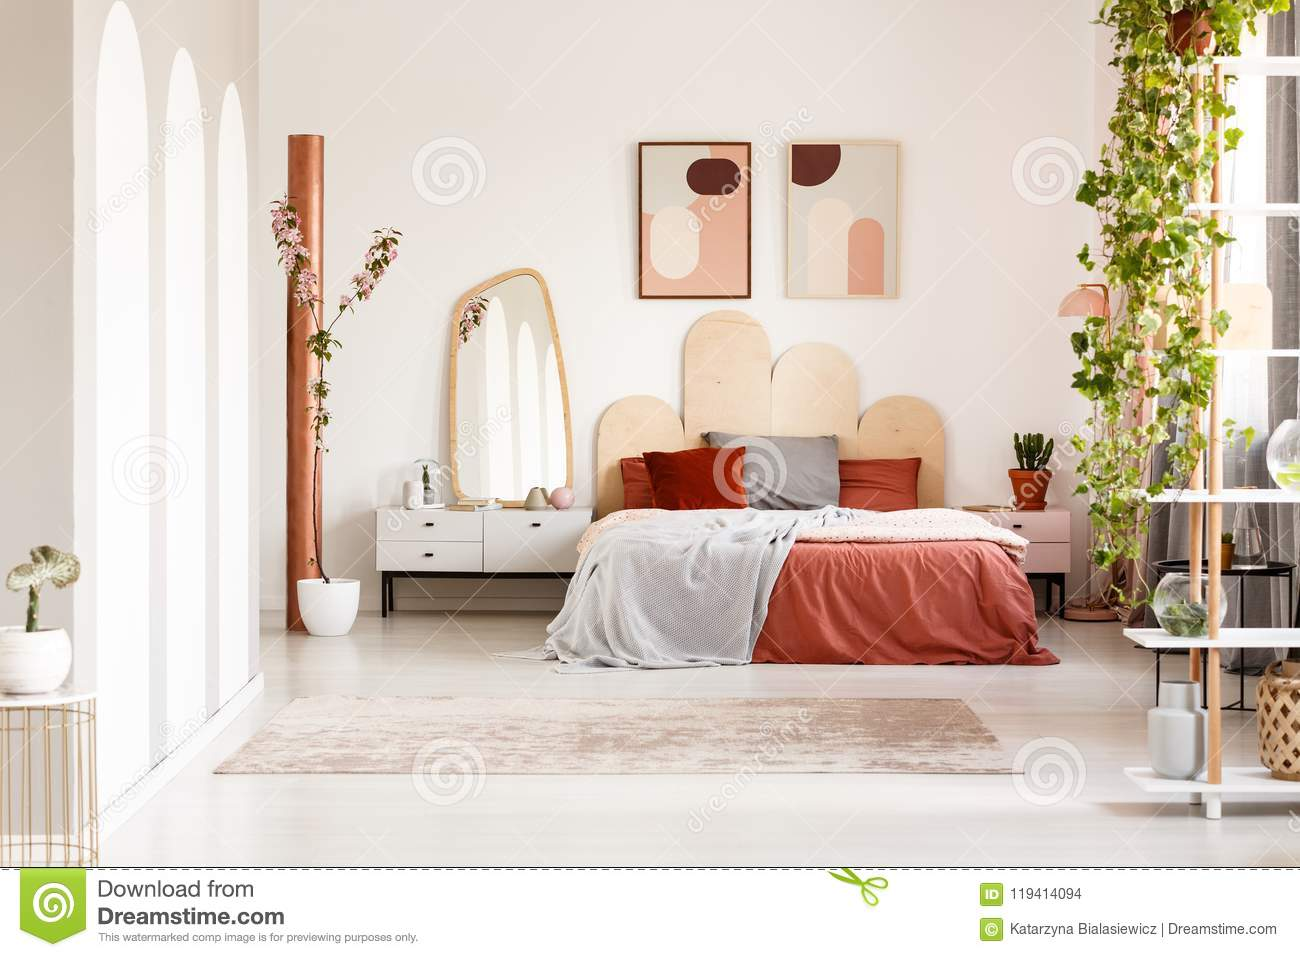 Mirror On Cabinet Next To Orange Bed Under Posters In ... on Mirrors Next To Bed  id=39246